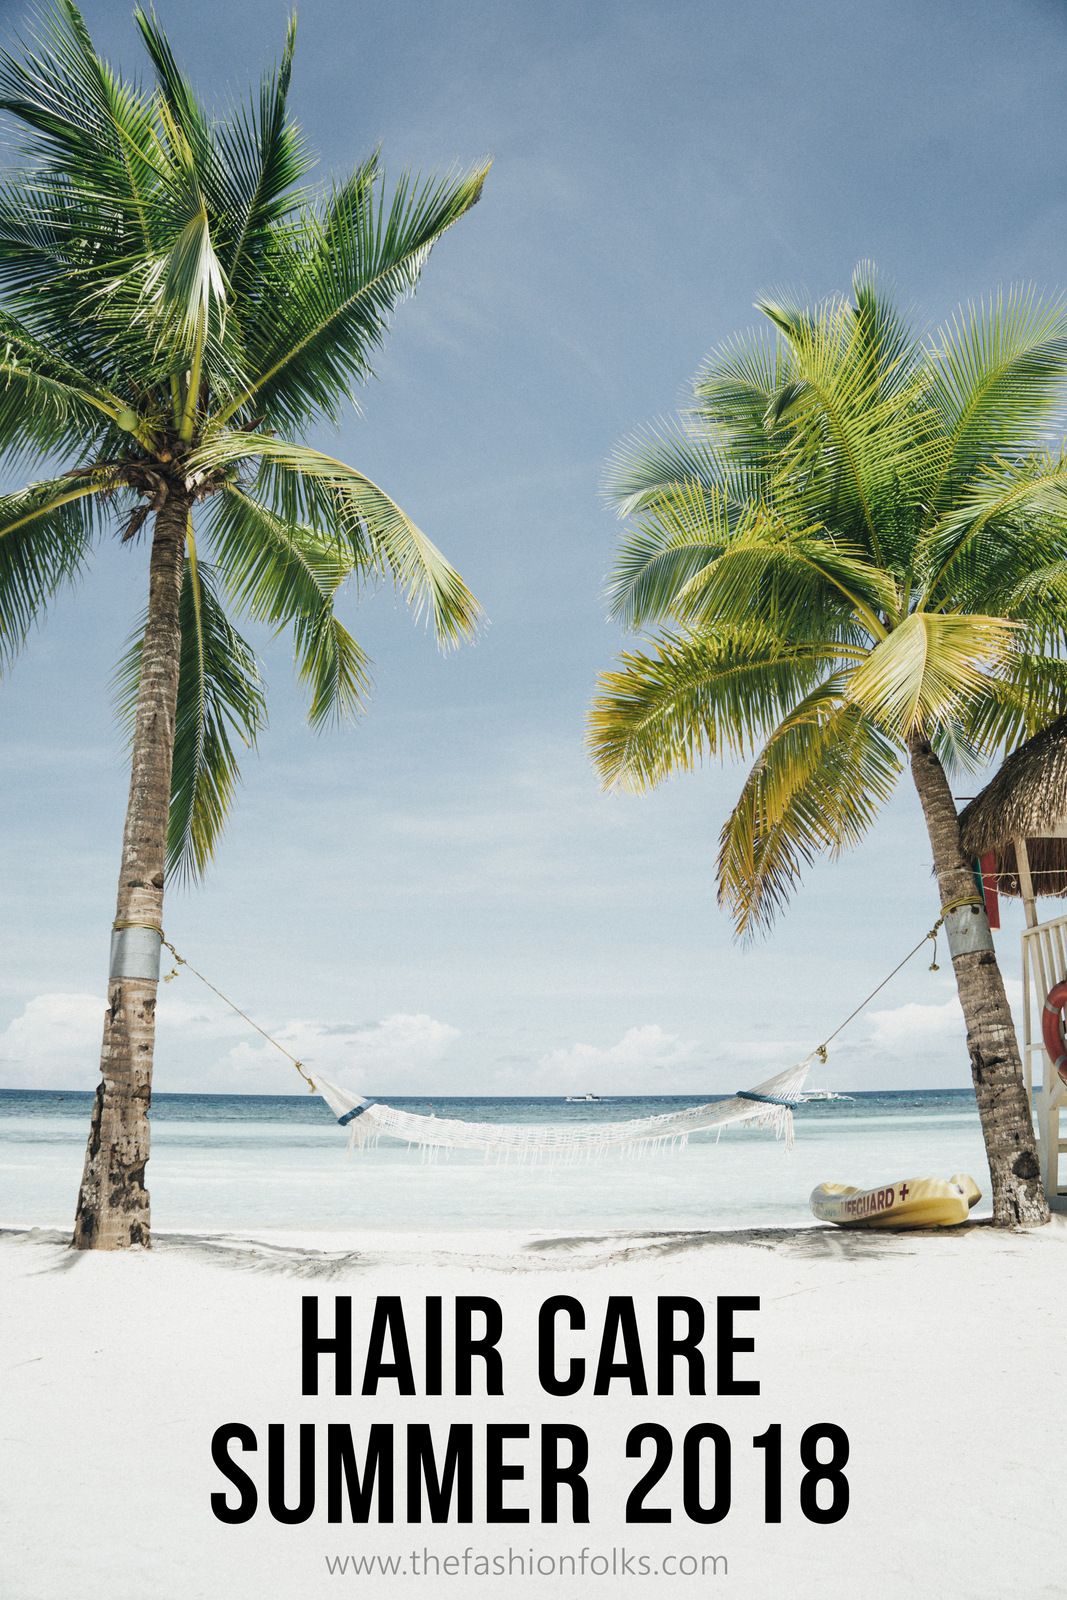 Hair Care Summer 2018